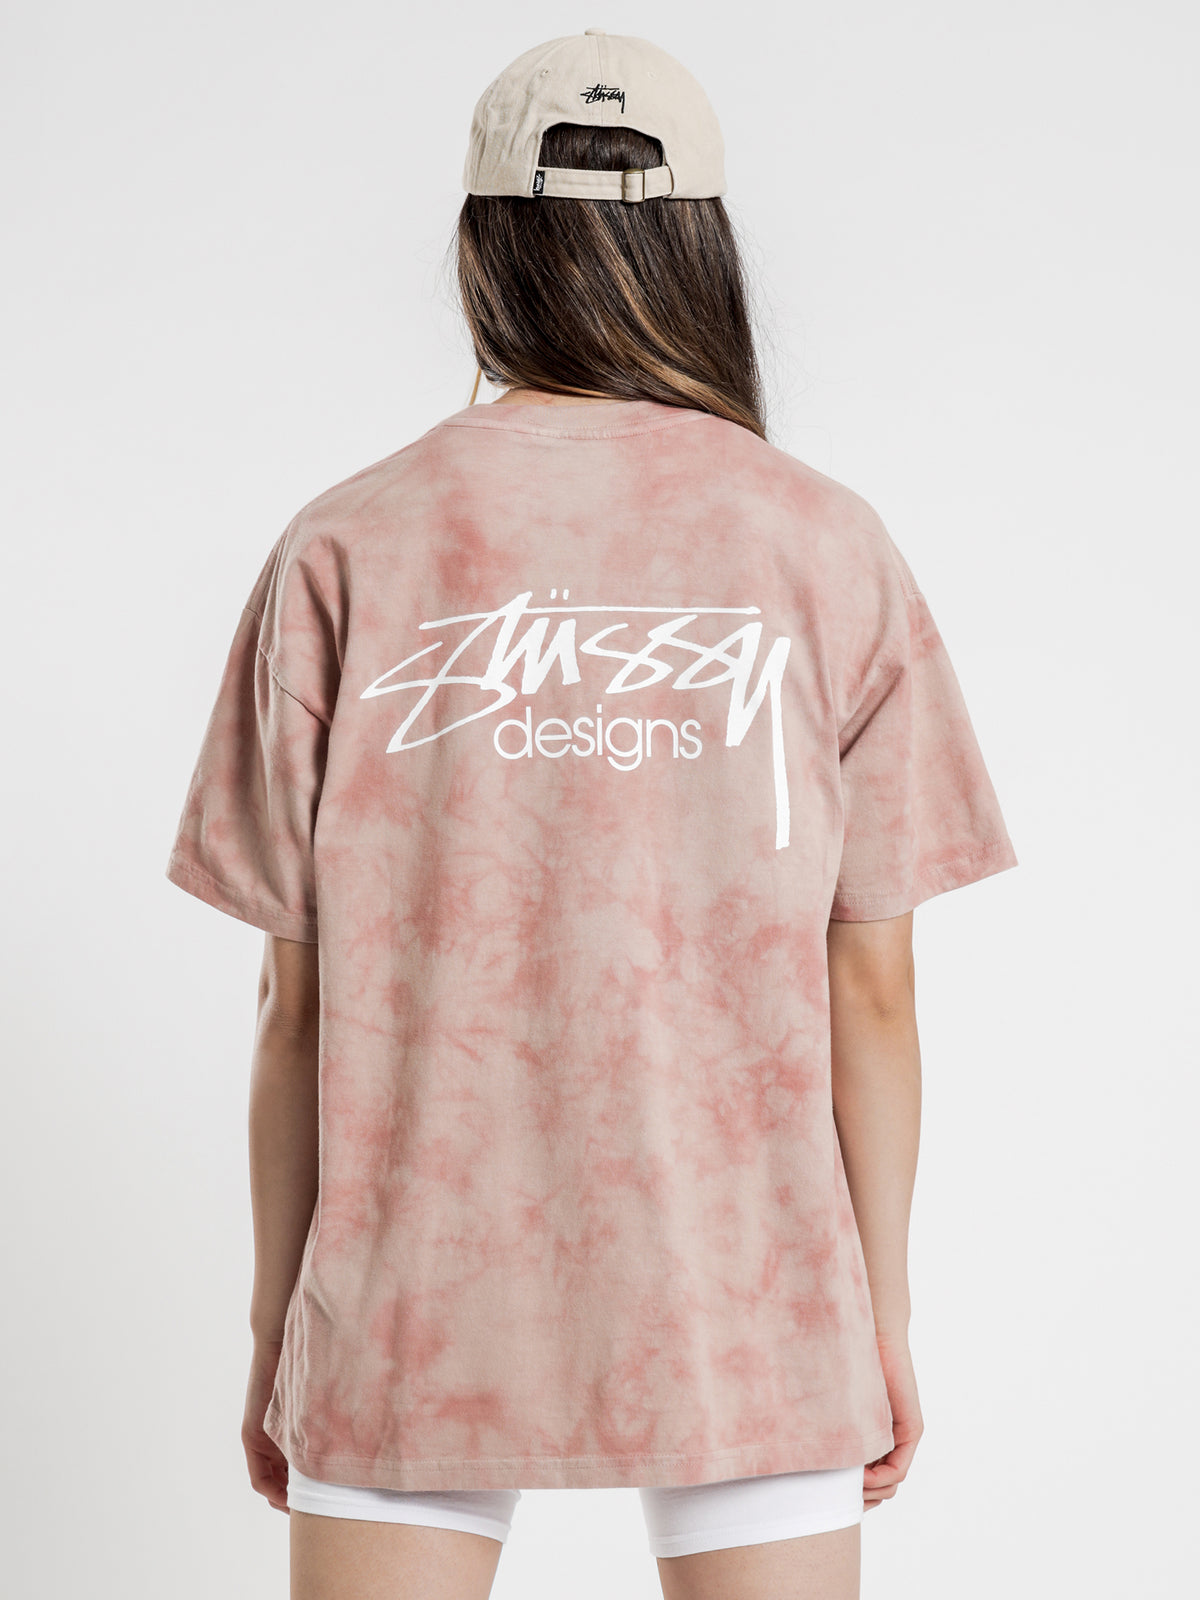 Designs Marble T-Shirt in Blush